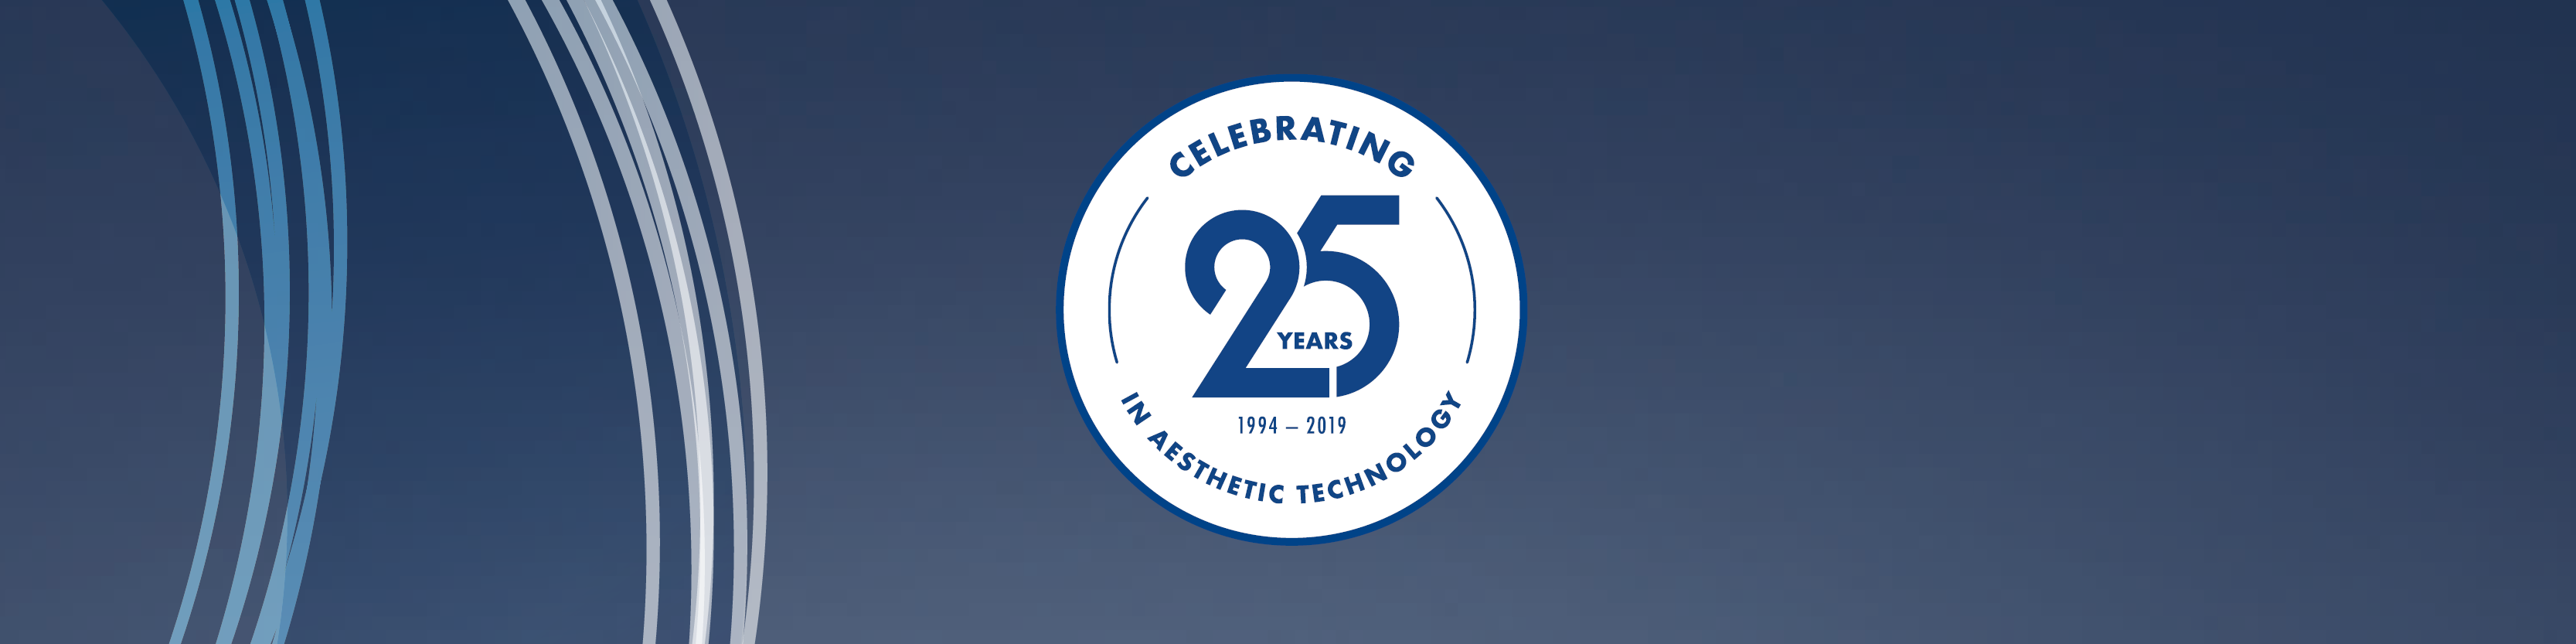 Lynton Celebrating 25 Years in Aesthetics Technology